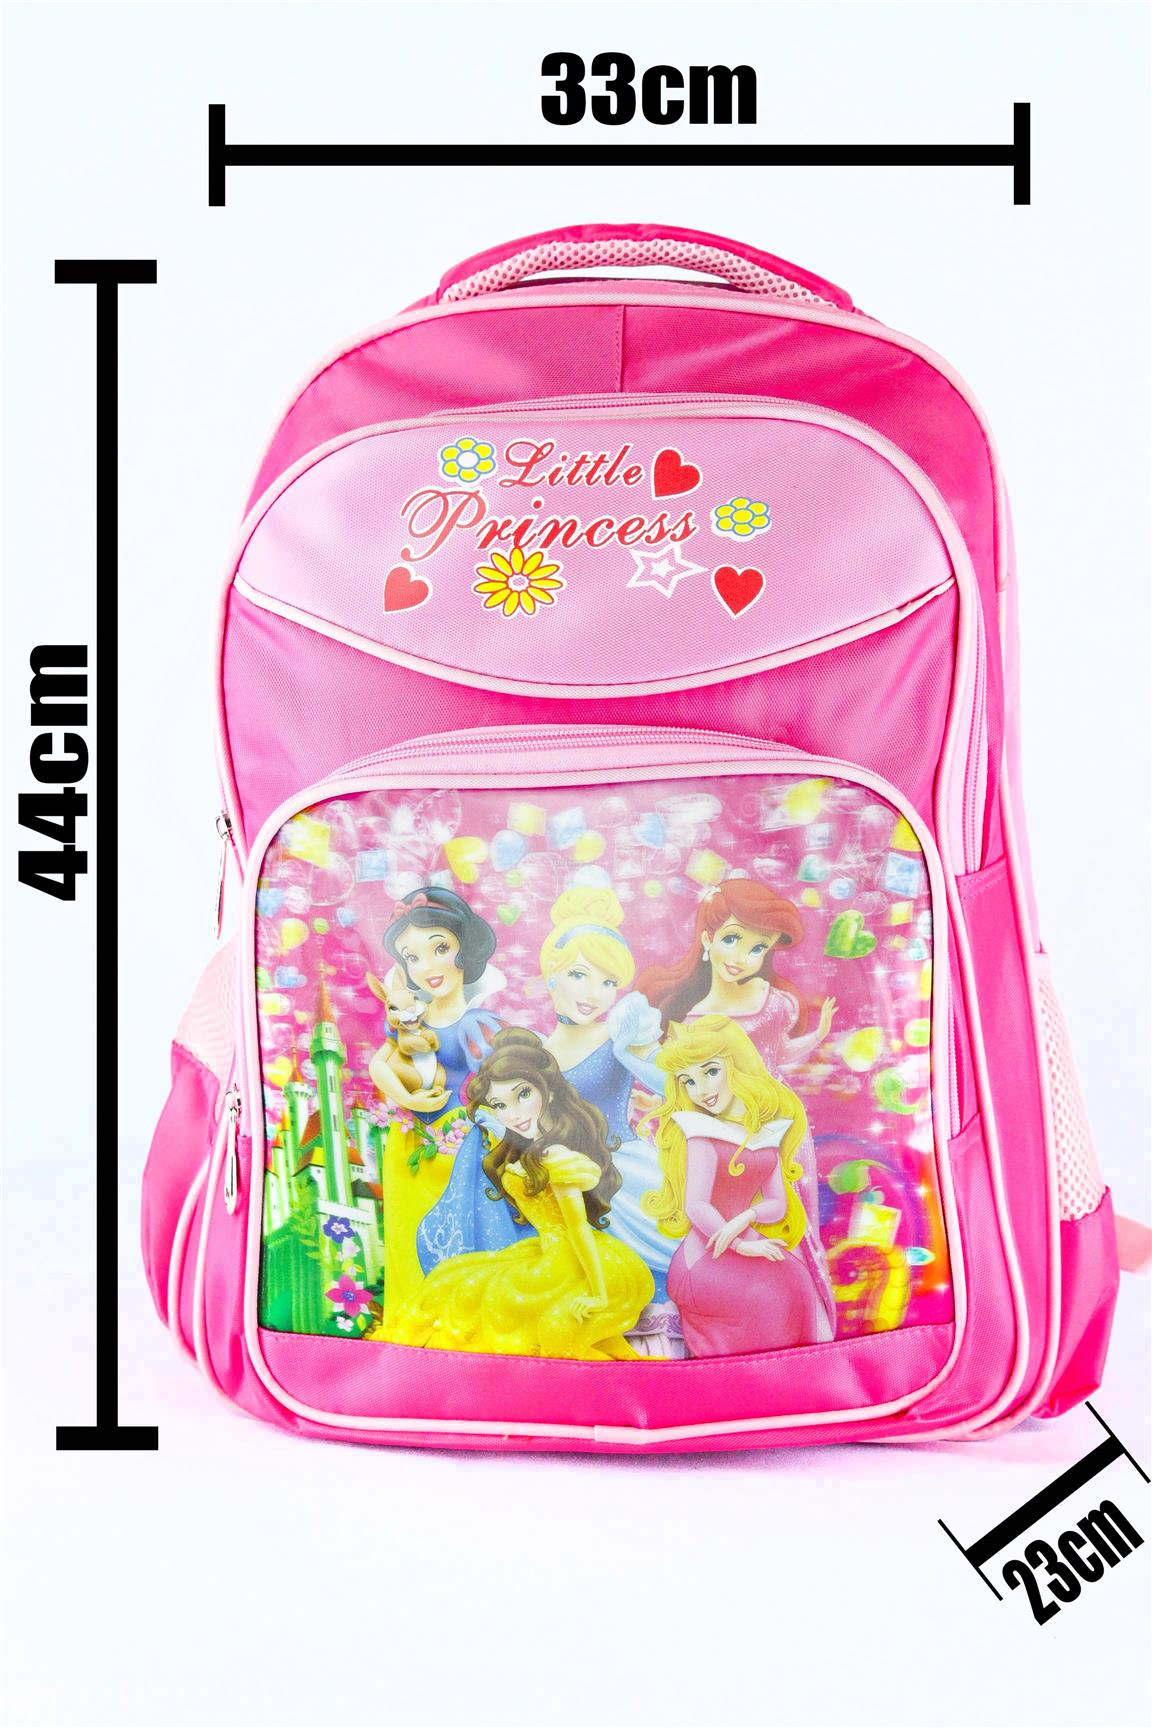 SCHOOL,BAG,SEKOLAH,DISNEY,PRINCESS,CINDERELLA,SNOWWHITE,MERMAID